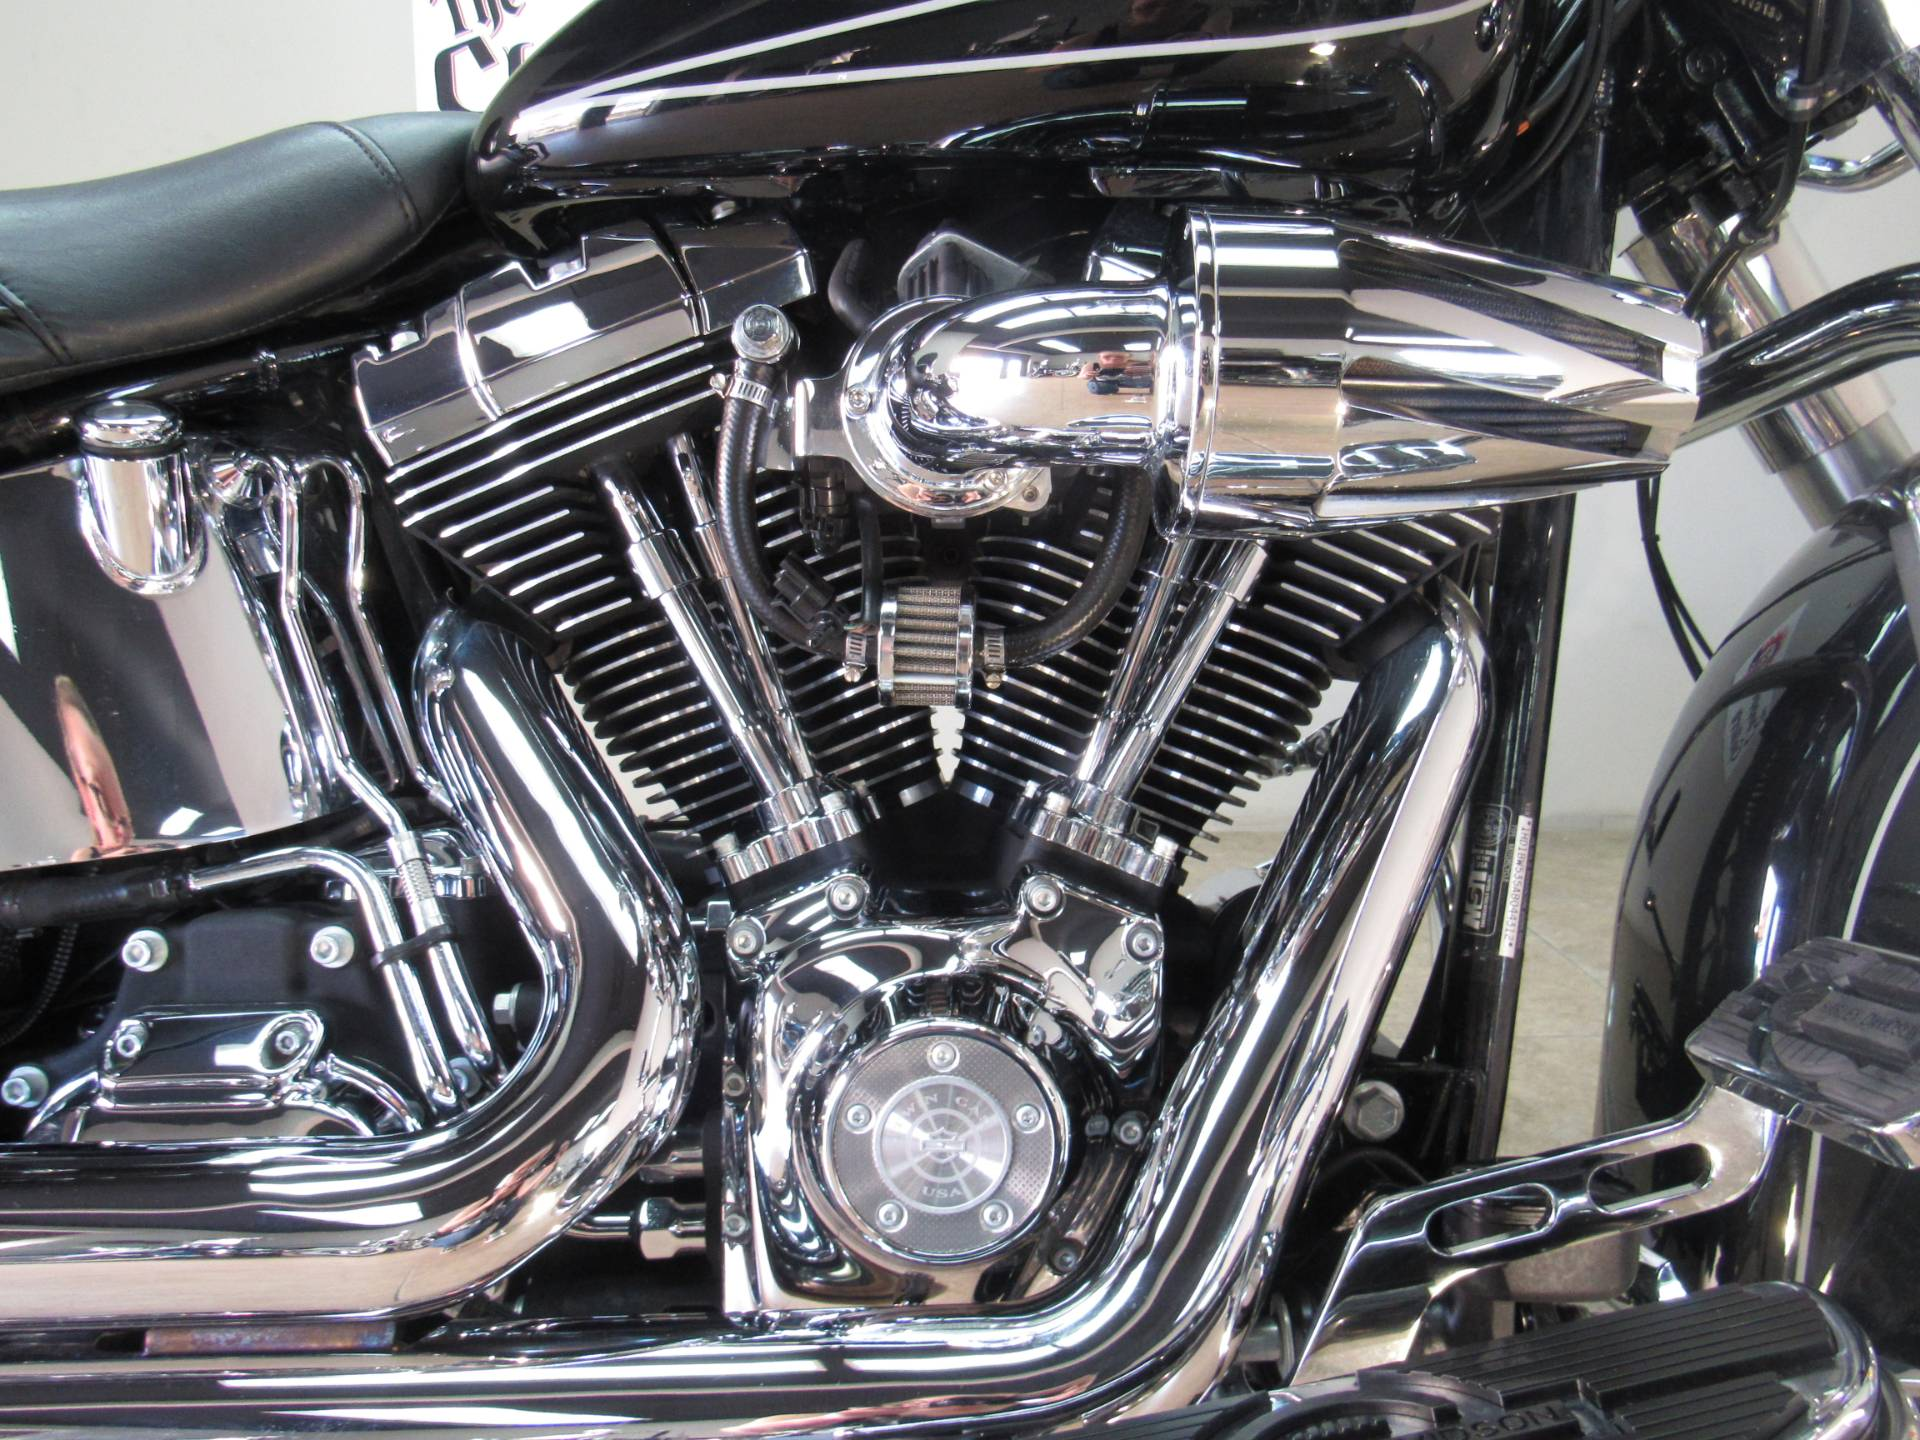 2010 Harley-Davidson Heritage Softail® Classic in Temecula, California - Photo 10